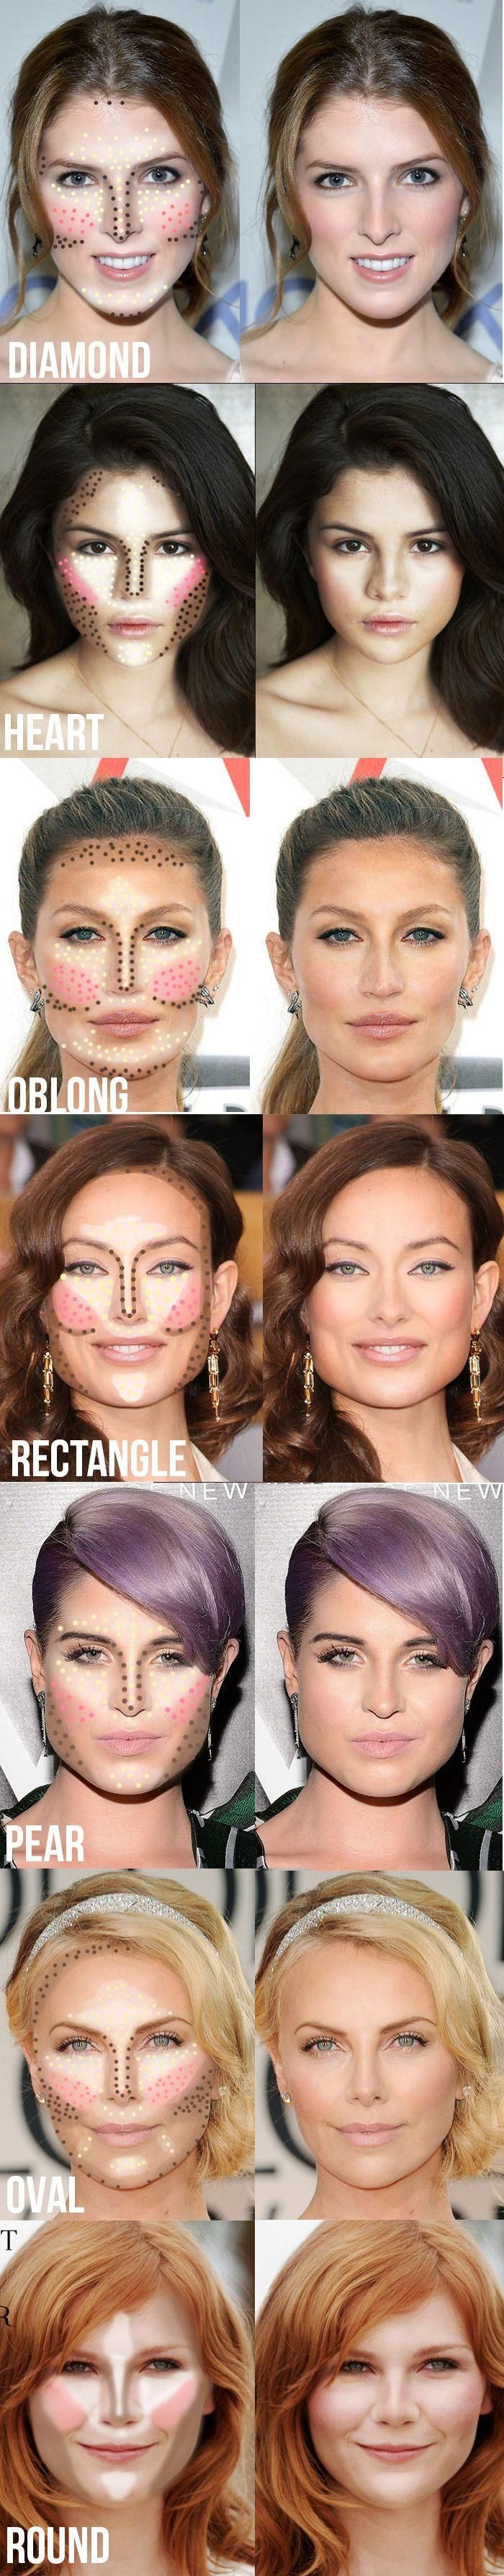 "Highlighting and contouring guide for your face shape. What a nice little ""cheat sheet""."